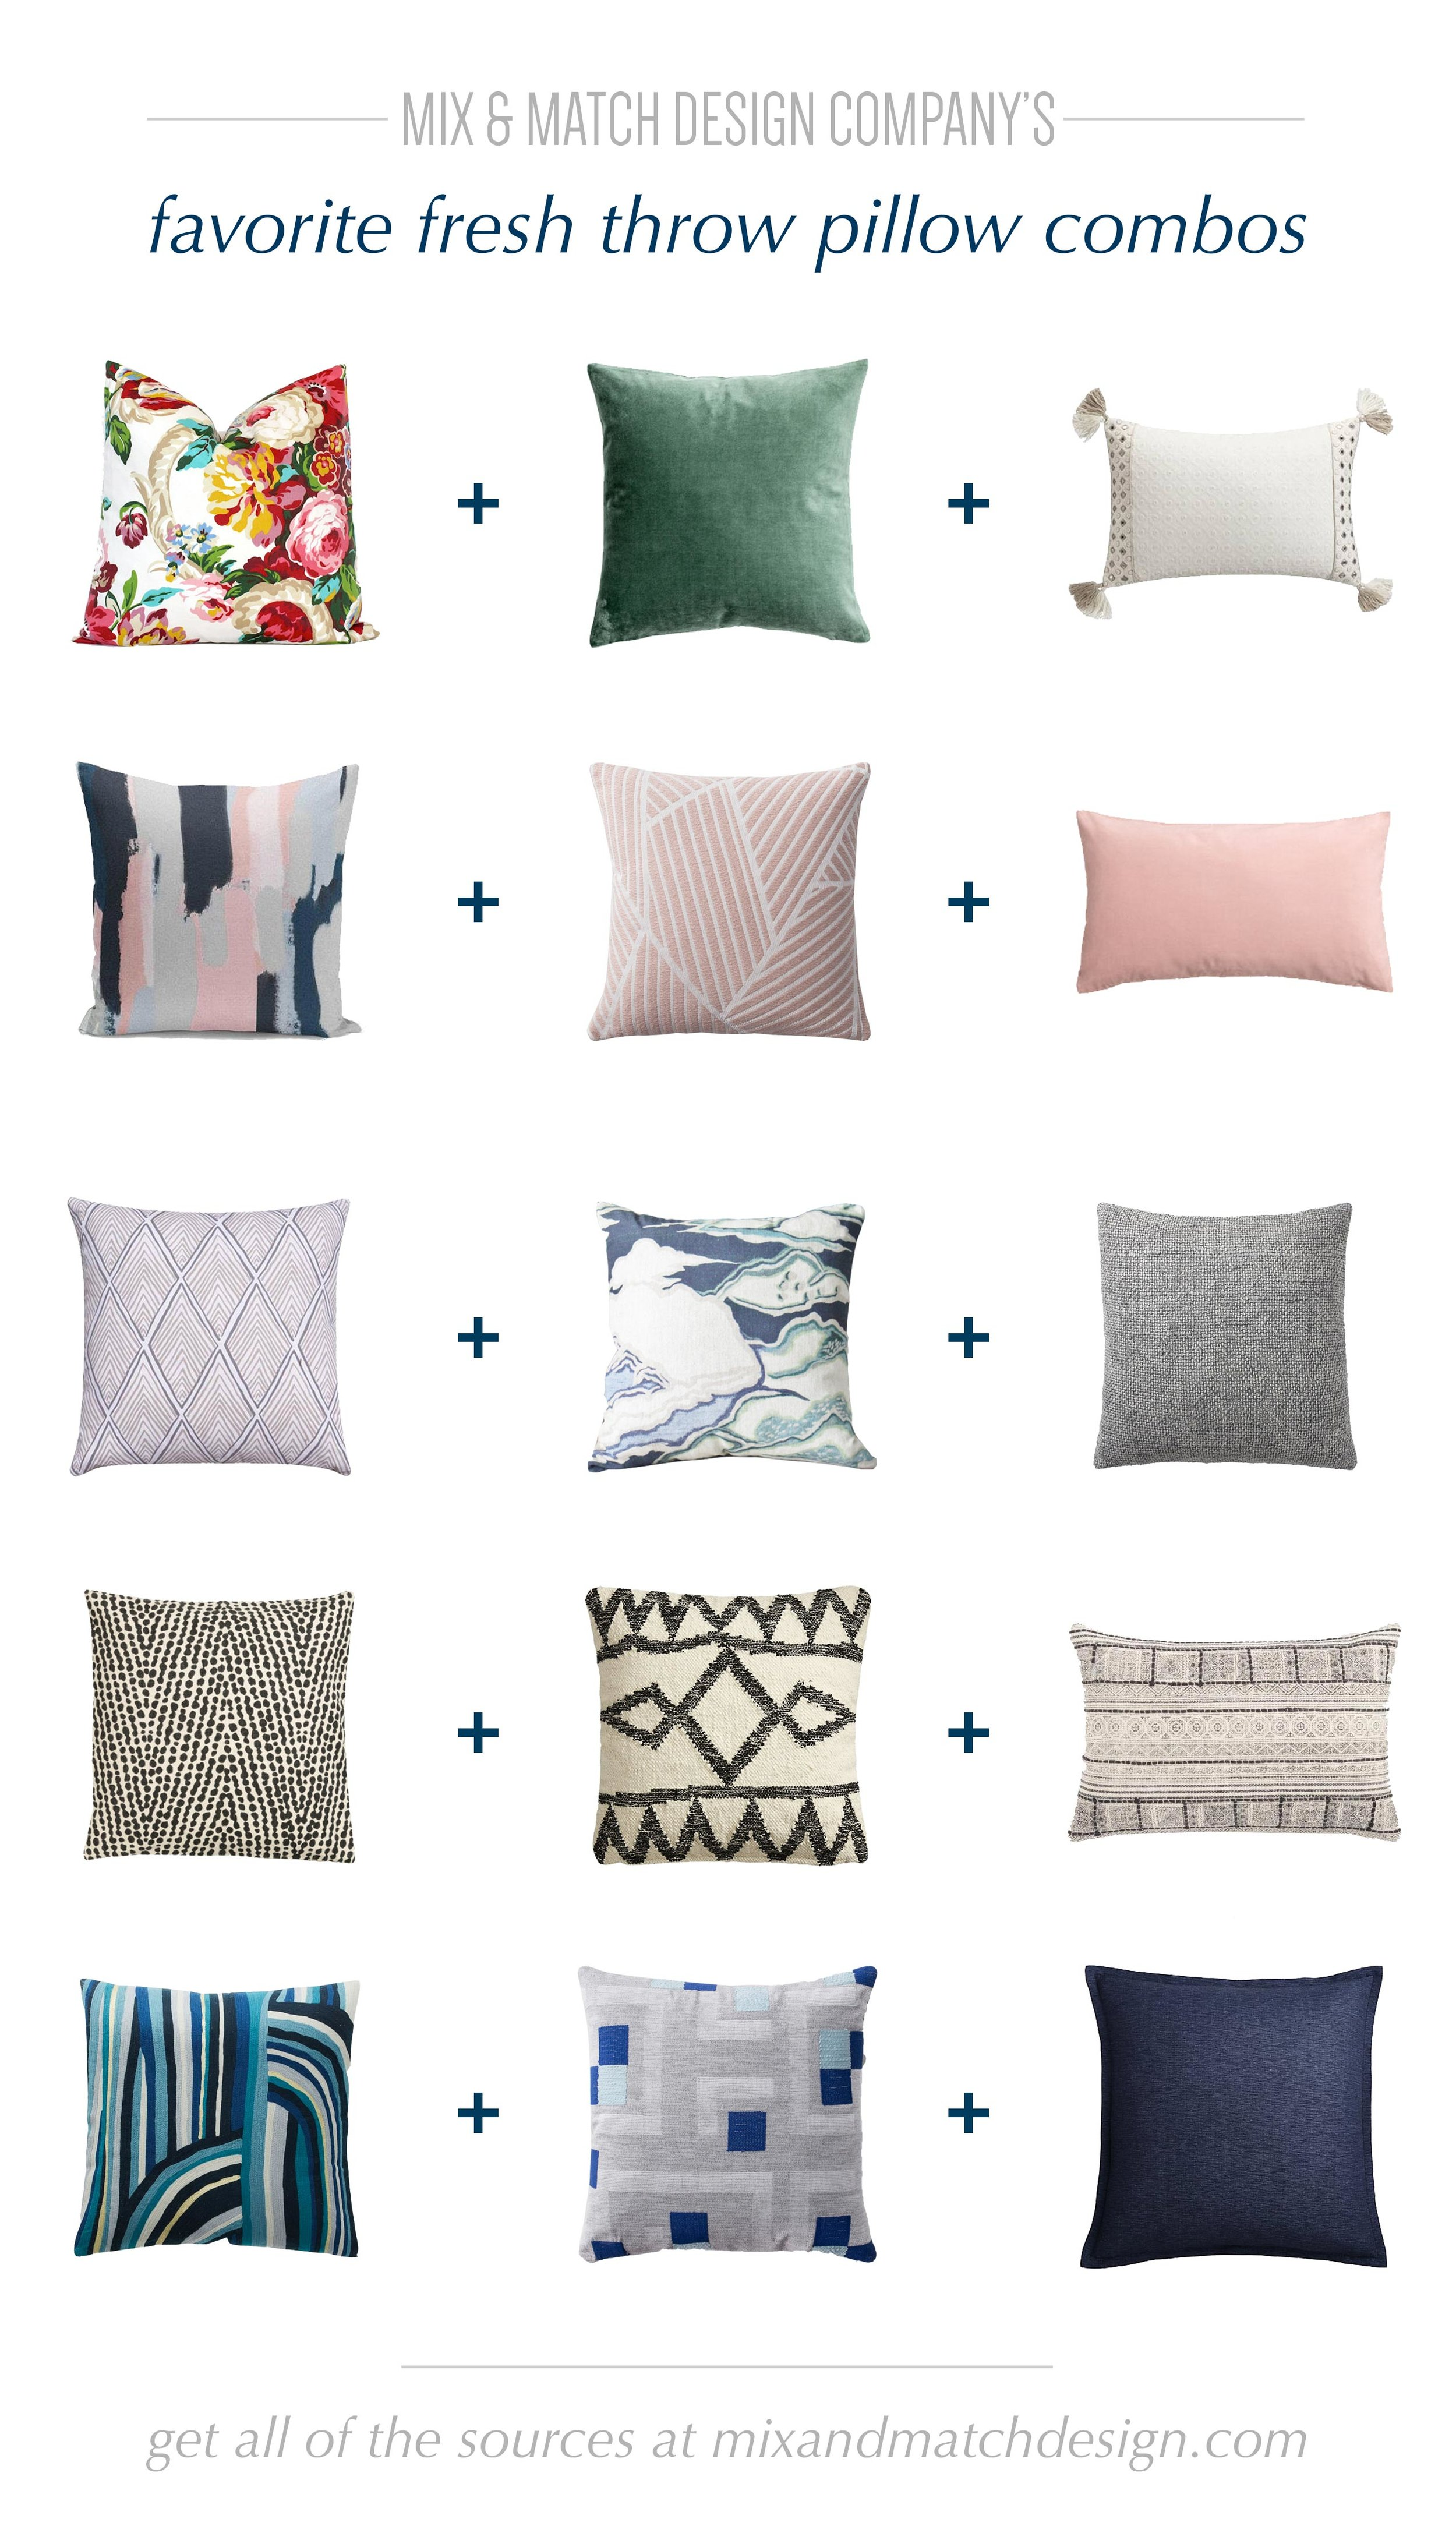 Need to refresh your home? An easy way to do it is with some new pillows! I've got tips on how to mix and match pillows as well as links to these five fresh combos to jumpstart your search.